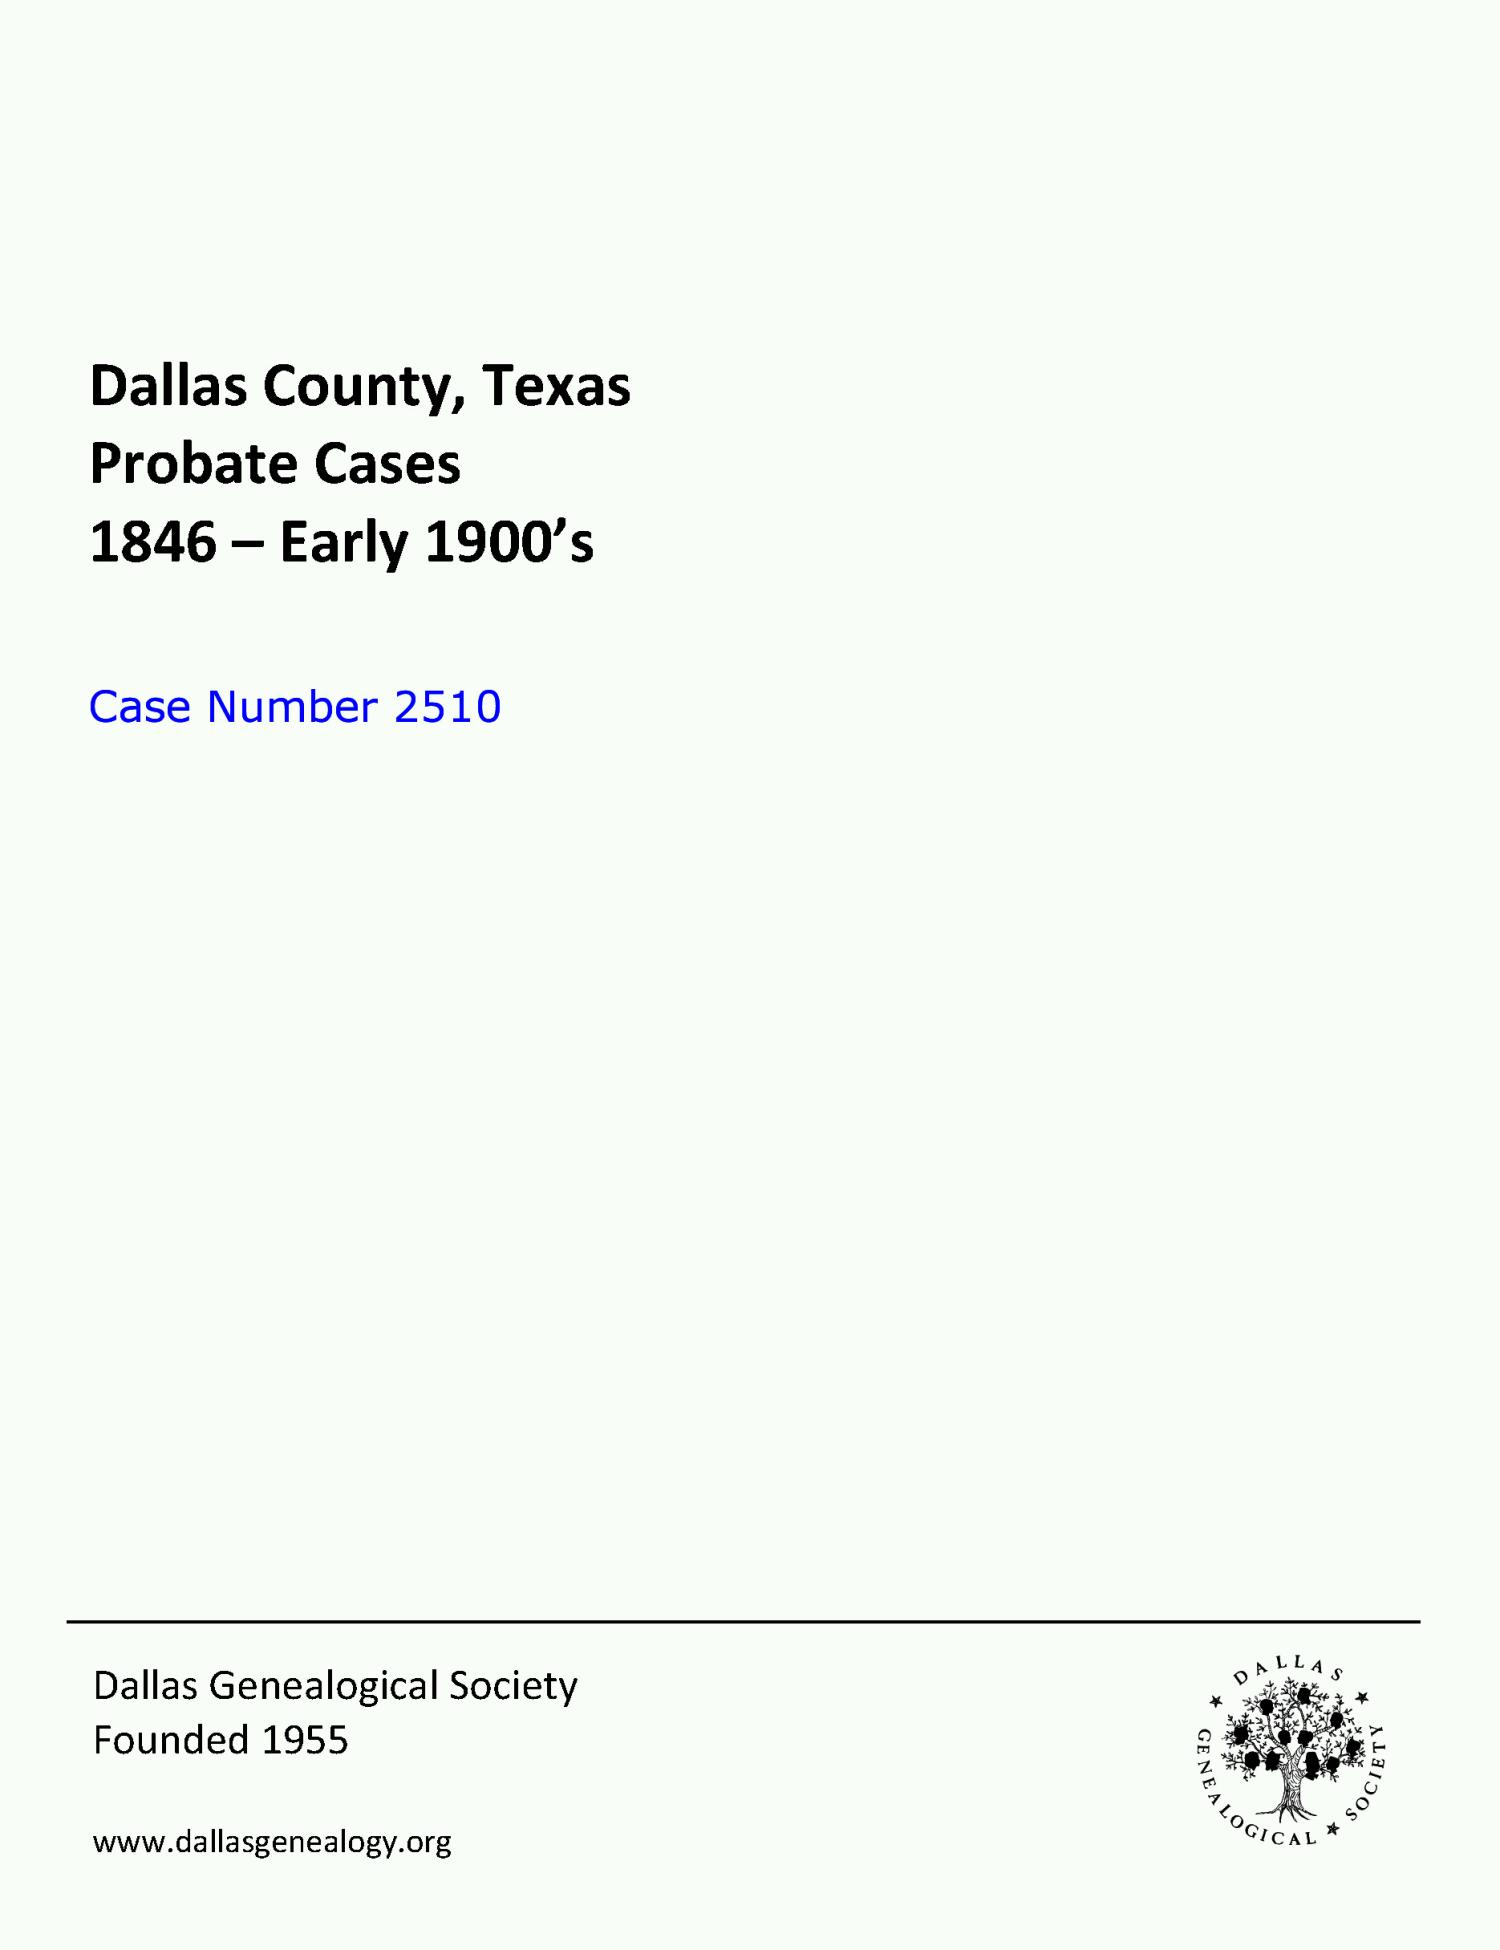 Dallas County Probate Case 2510: Stonehart, G.H. (Deceased)                                                                                                      [Sequence #]: 1 of 59